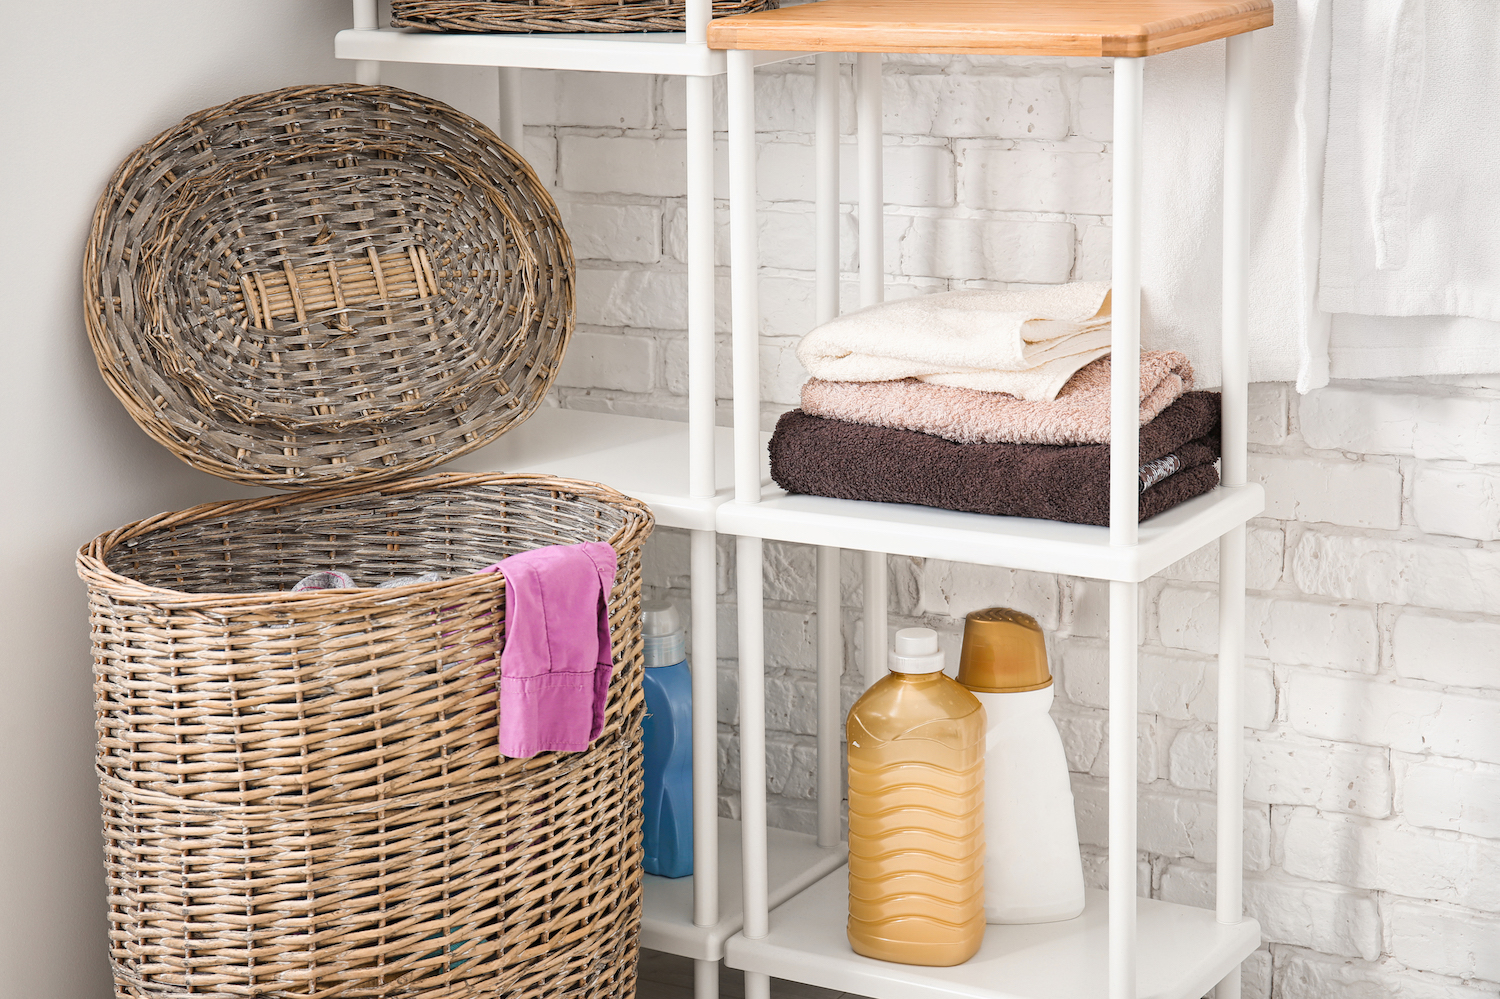 bathroom cleaning hack to get organized